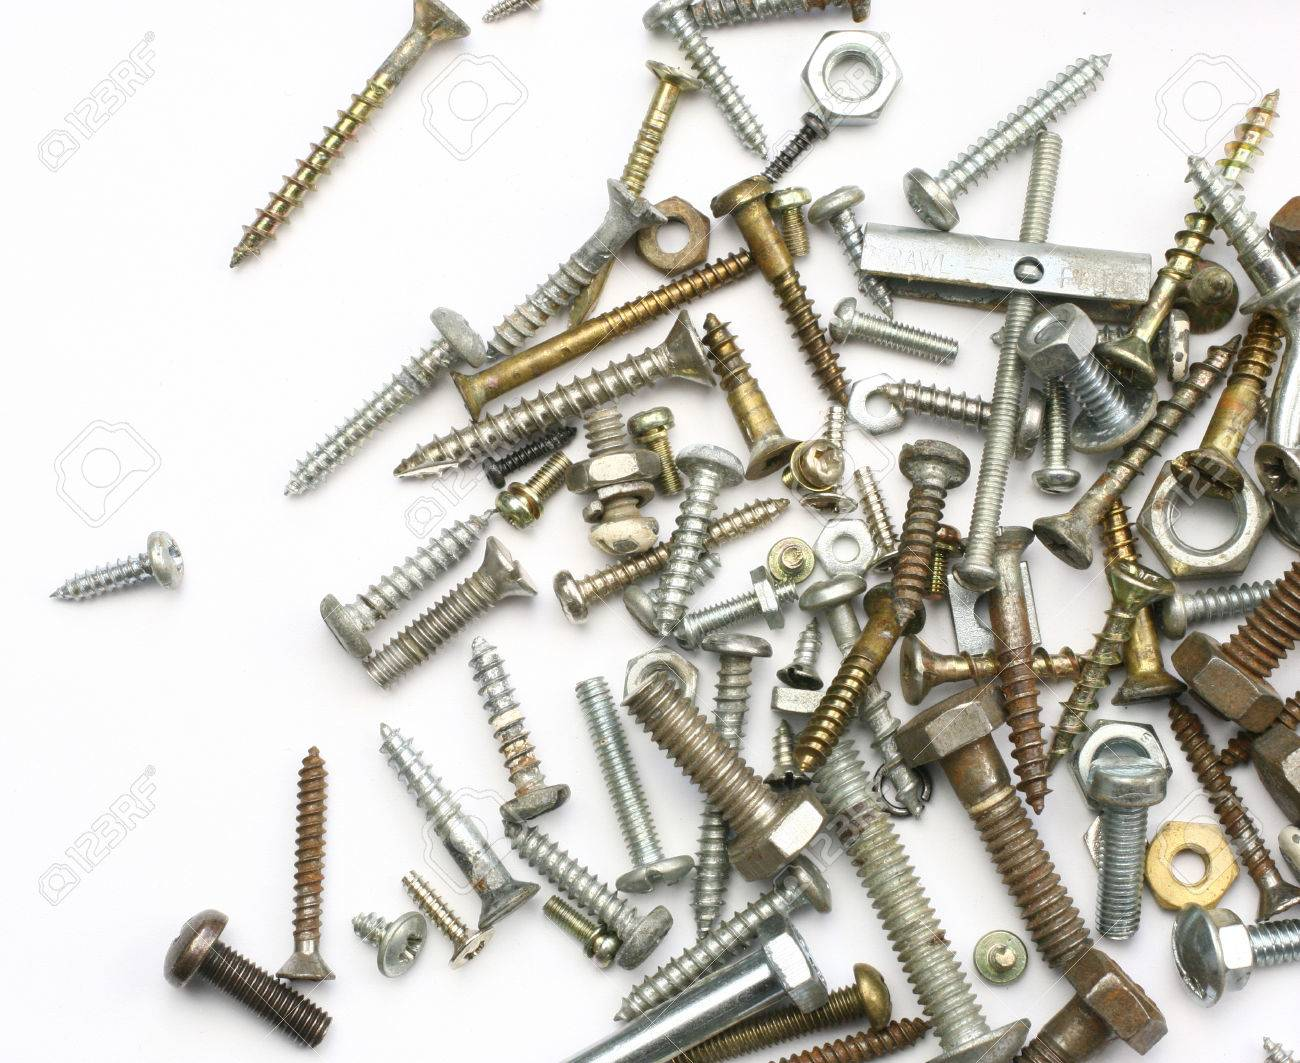 A Pile Of Nuts Bolts Screws And Other Fasteners On A White Background Stock Photo Picture And Royalty Free Image Image 47651259